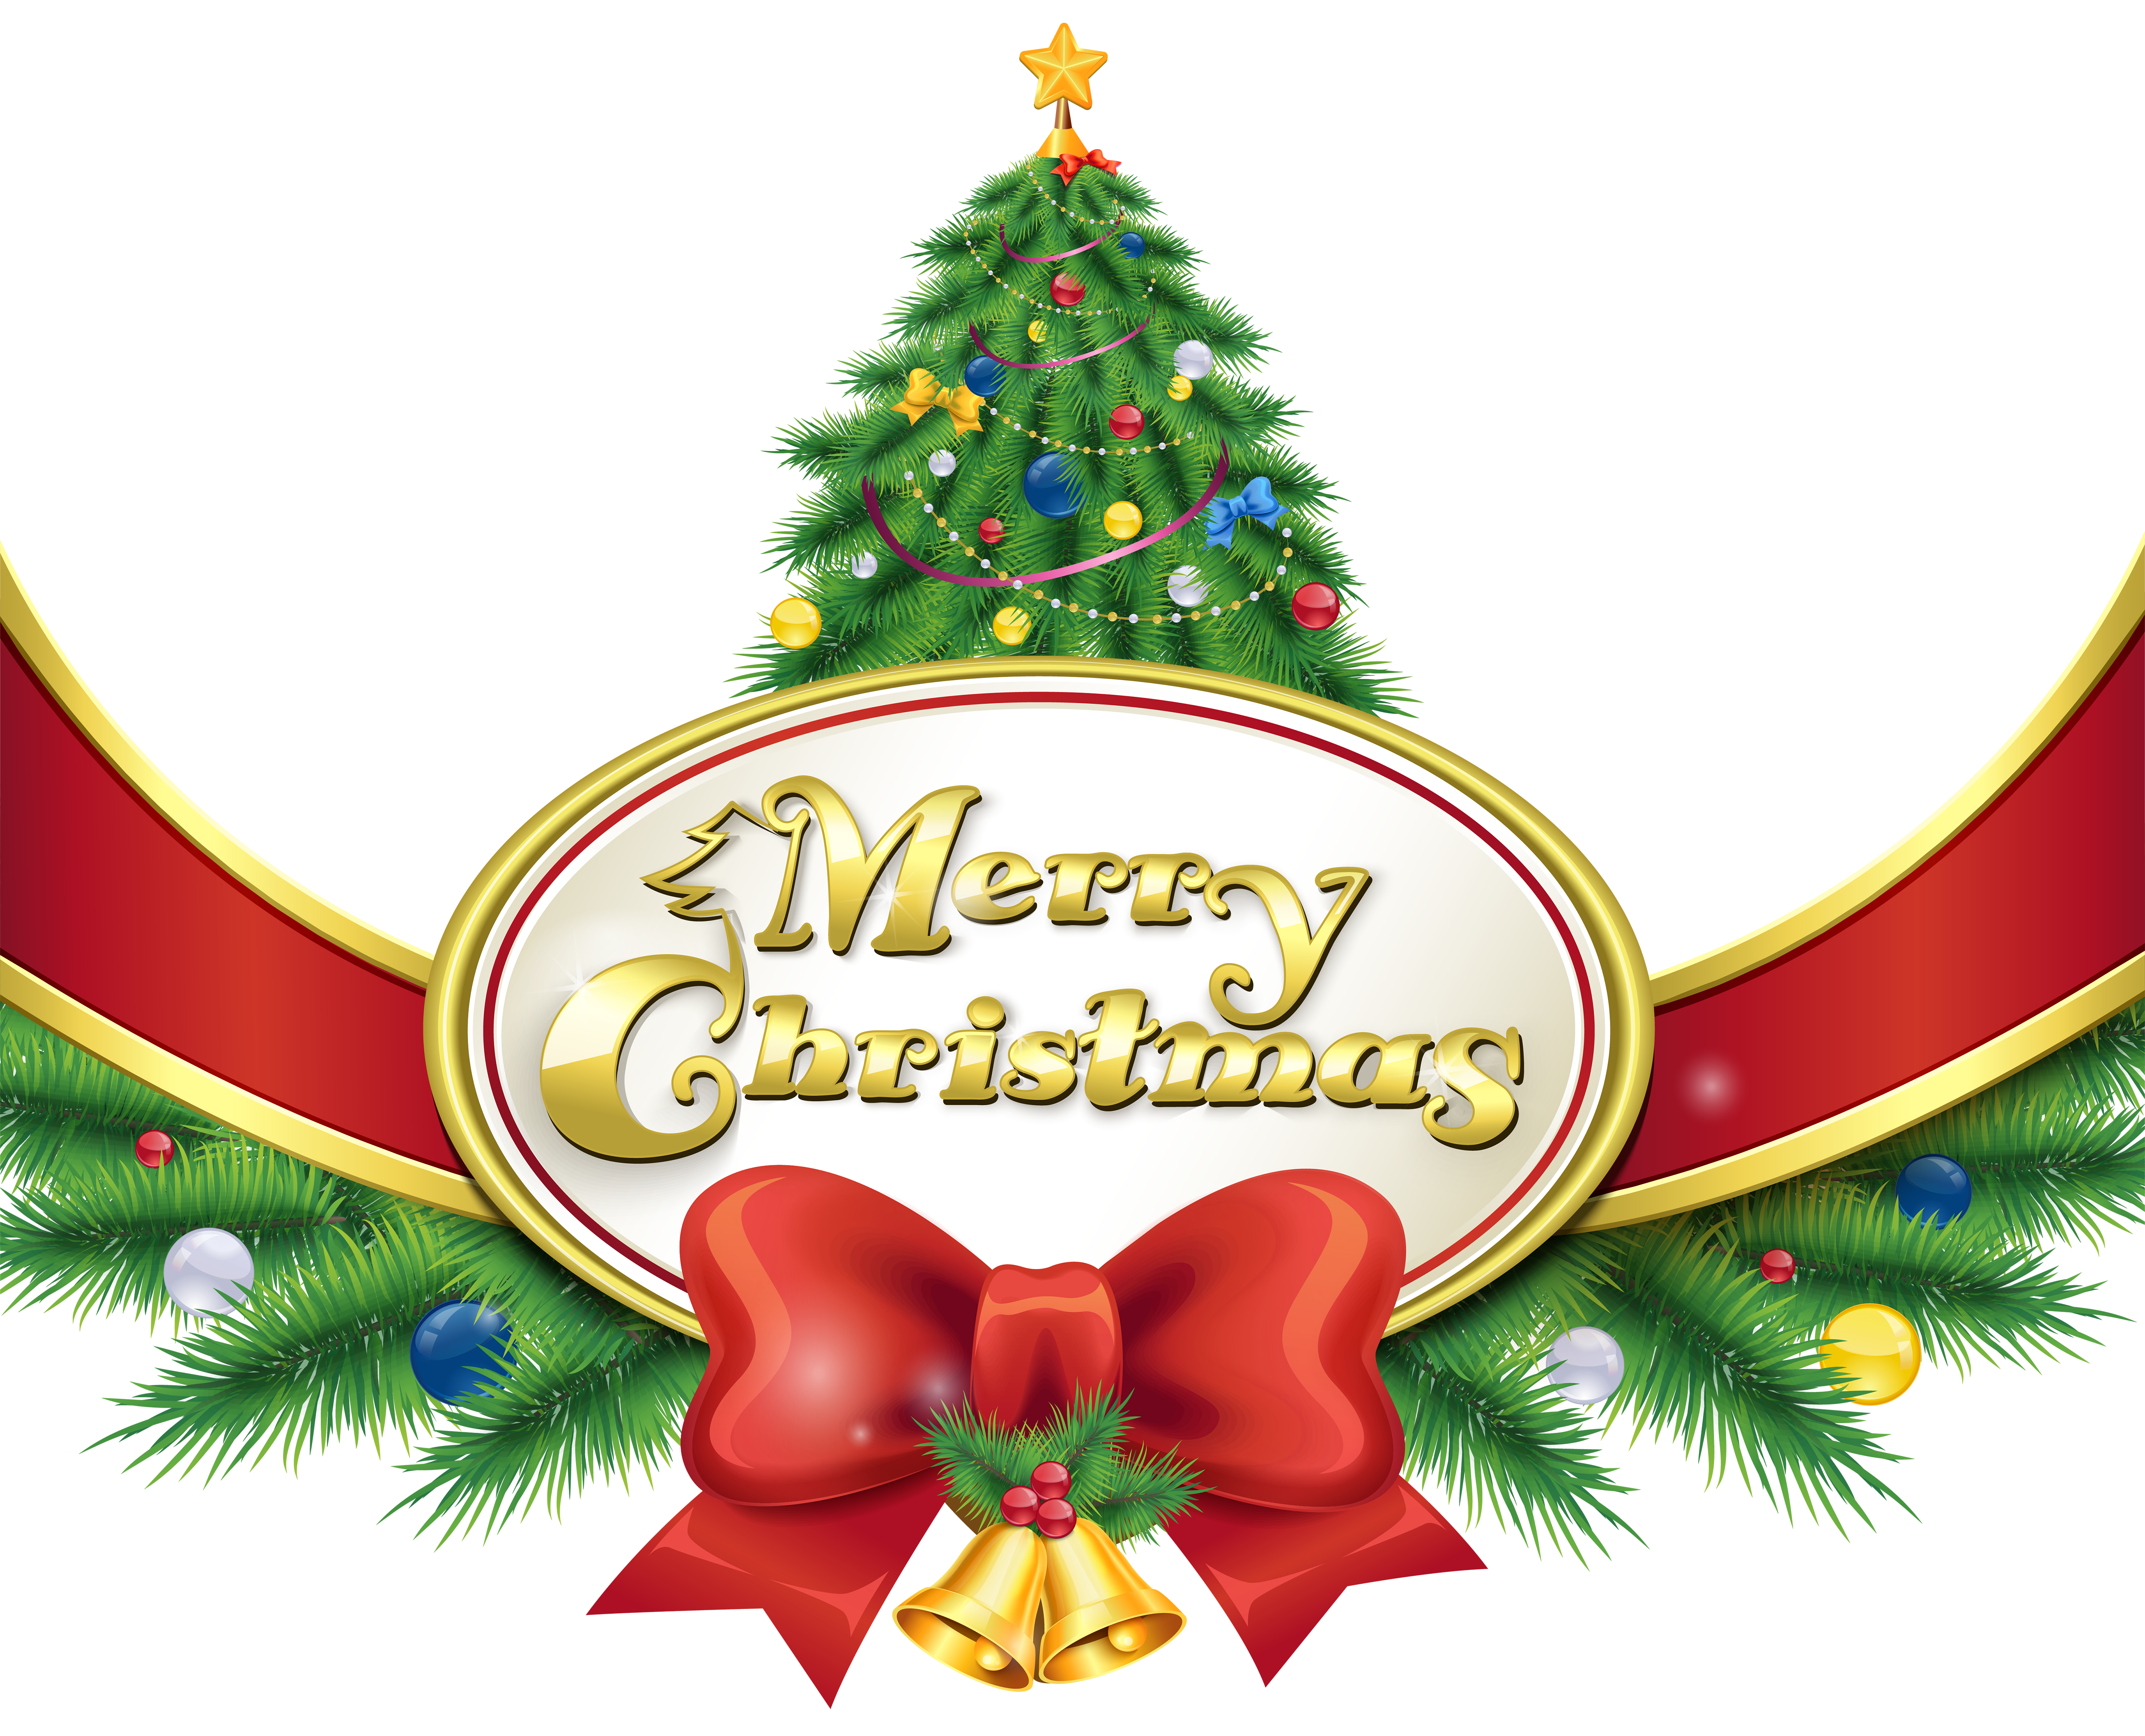 Merry Christmas with Tree and Bow PNG Clipart Image.